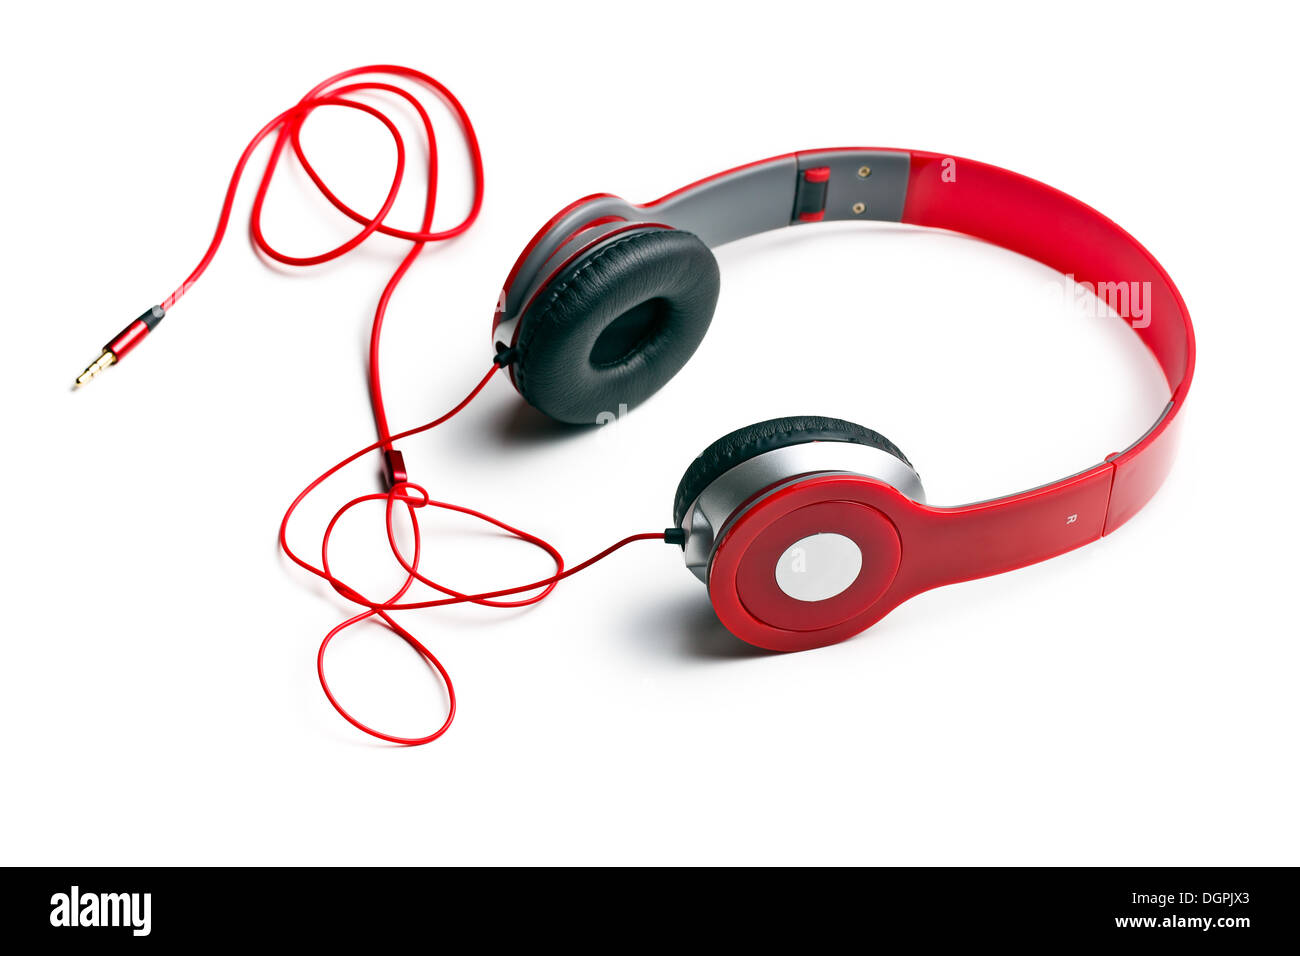 red headphones on white background - Stock Image